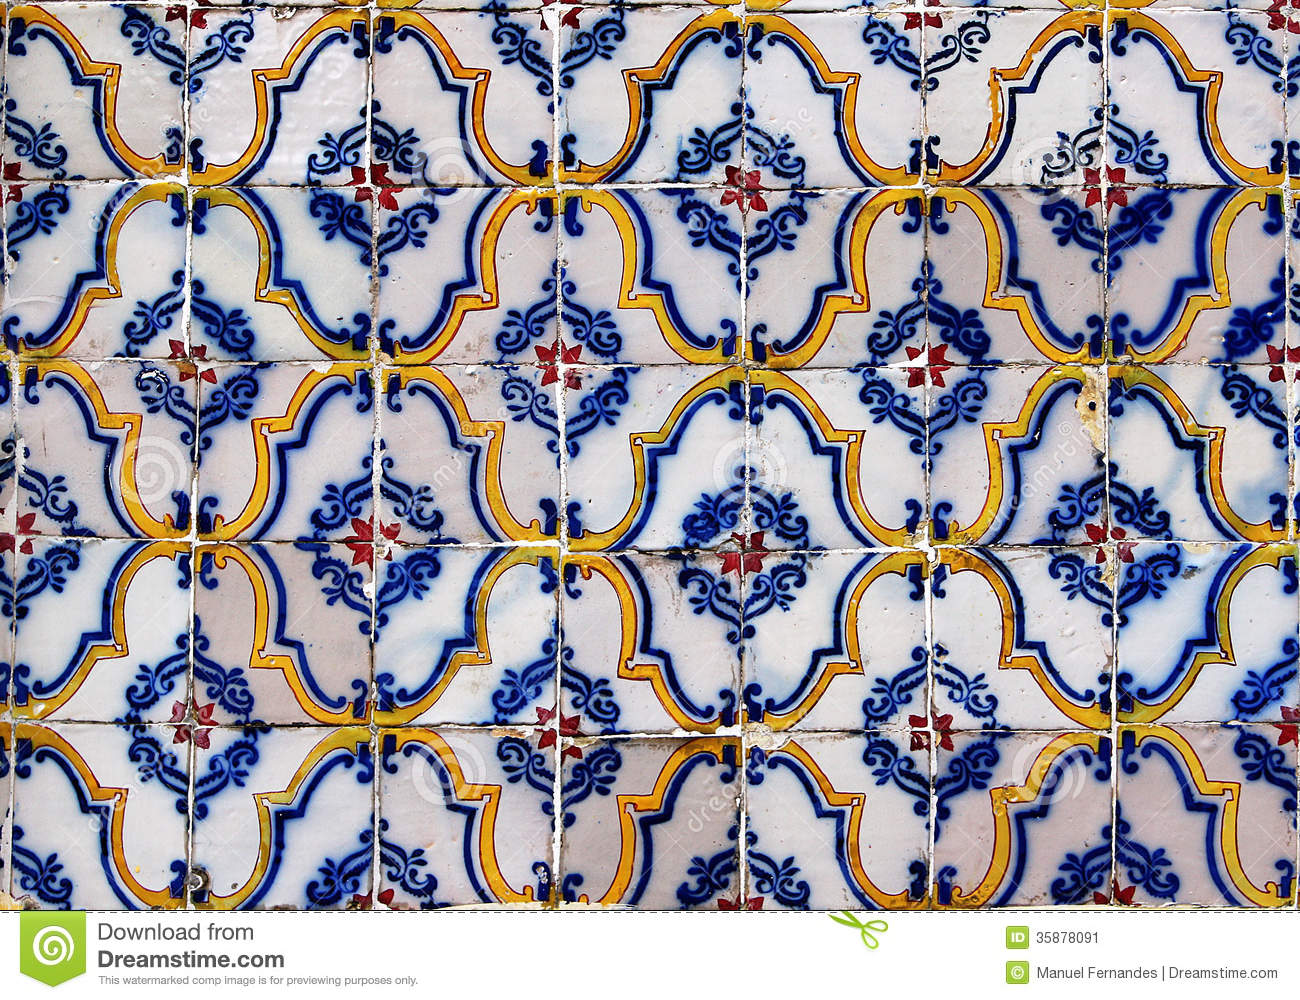 Ceramic tiles meaning image collections tile flooring design ideas ceramic tiles meaning choice image tile flooring design ideas ceramic tiles meaning choice image tile flooring doublecrazyfo Image collections